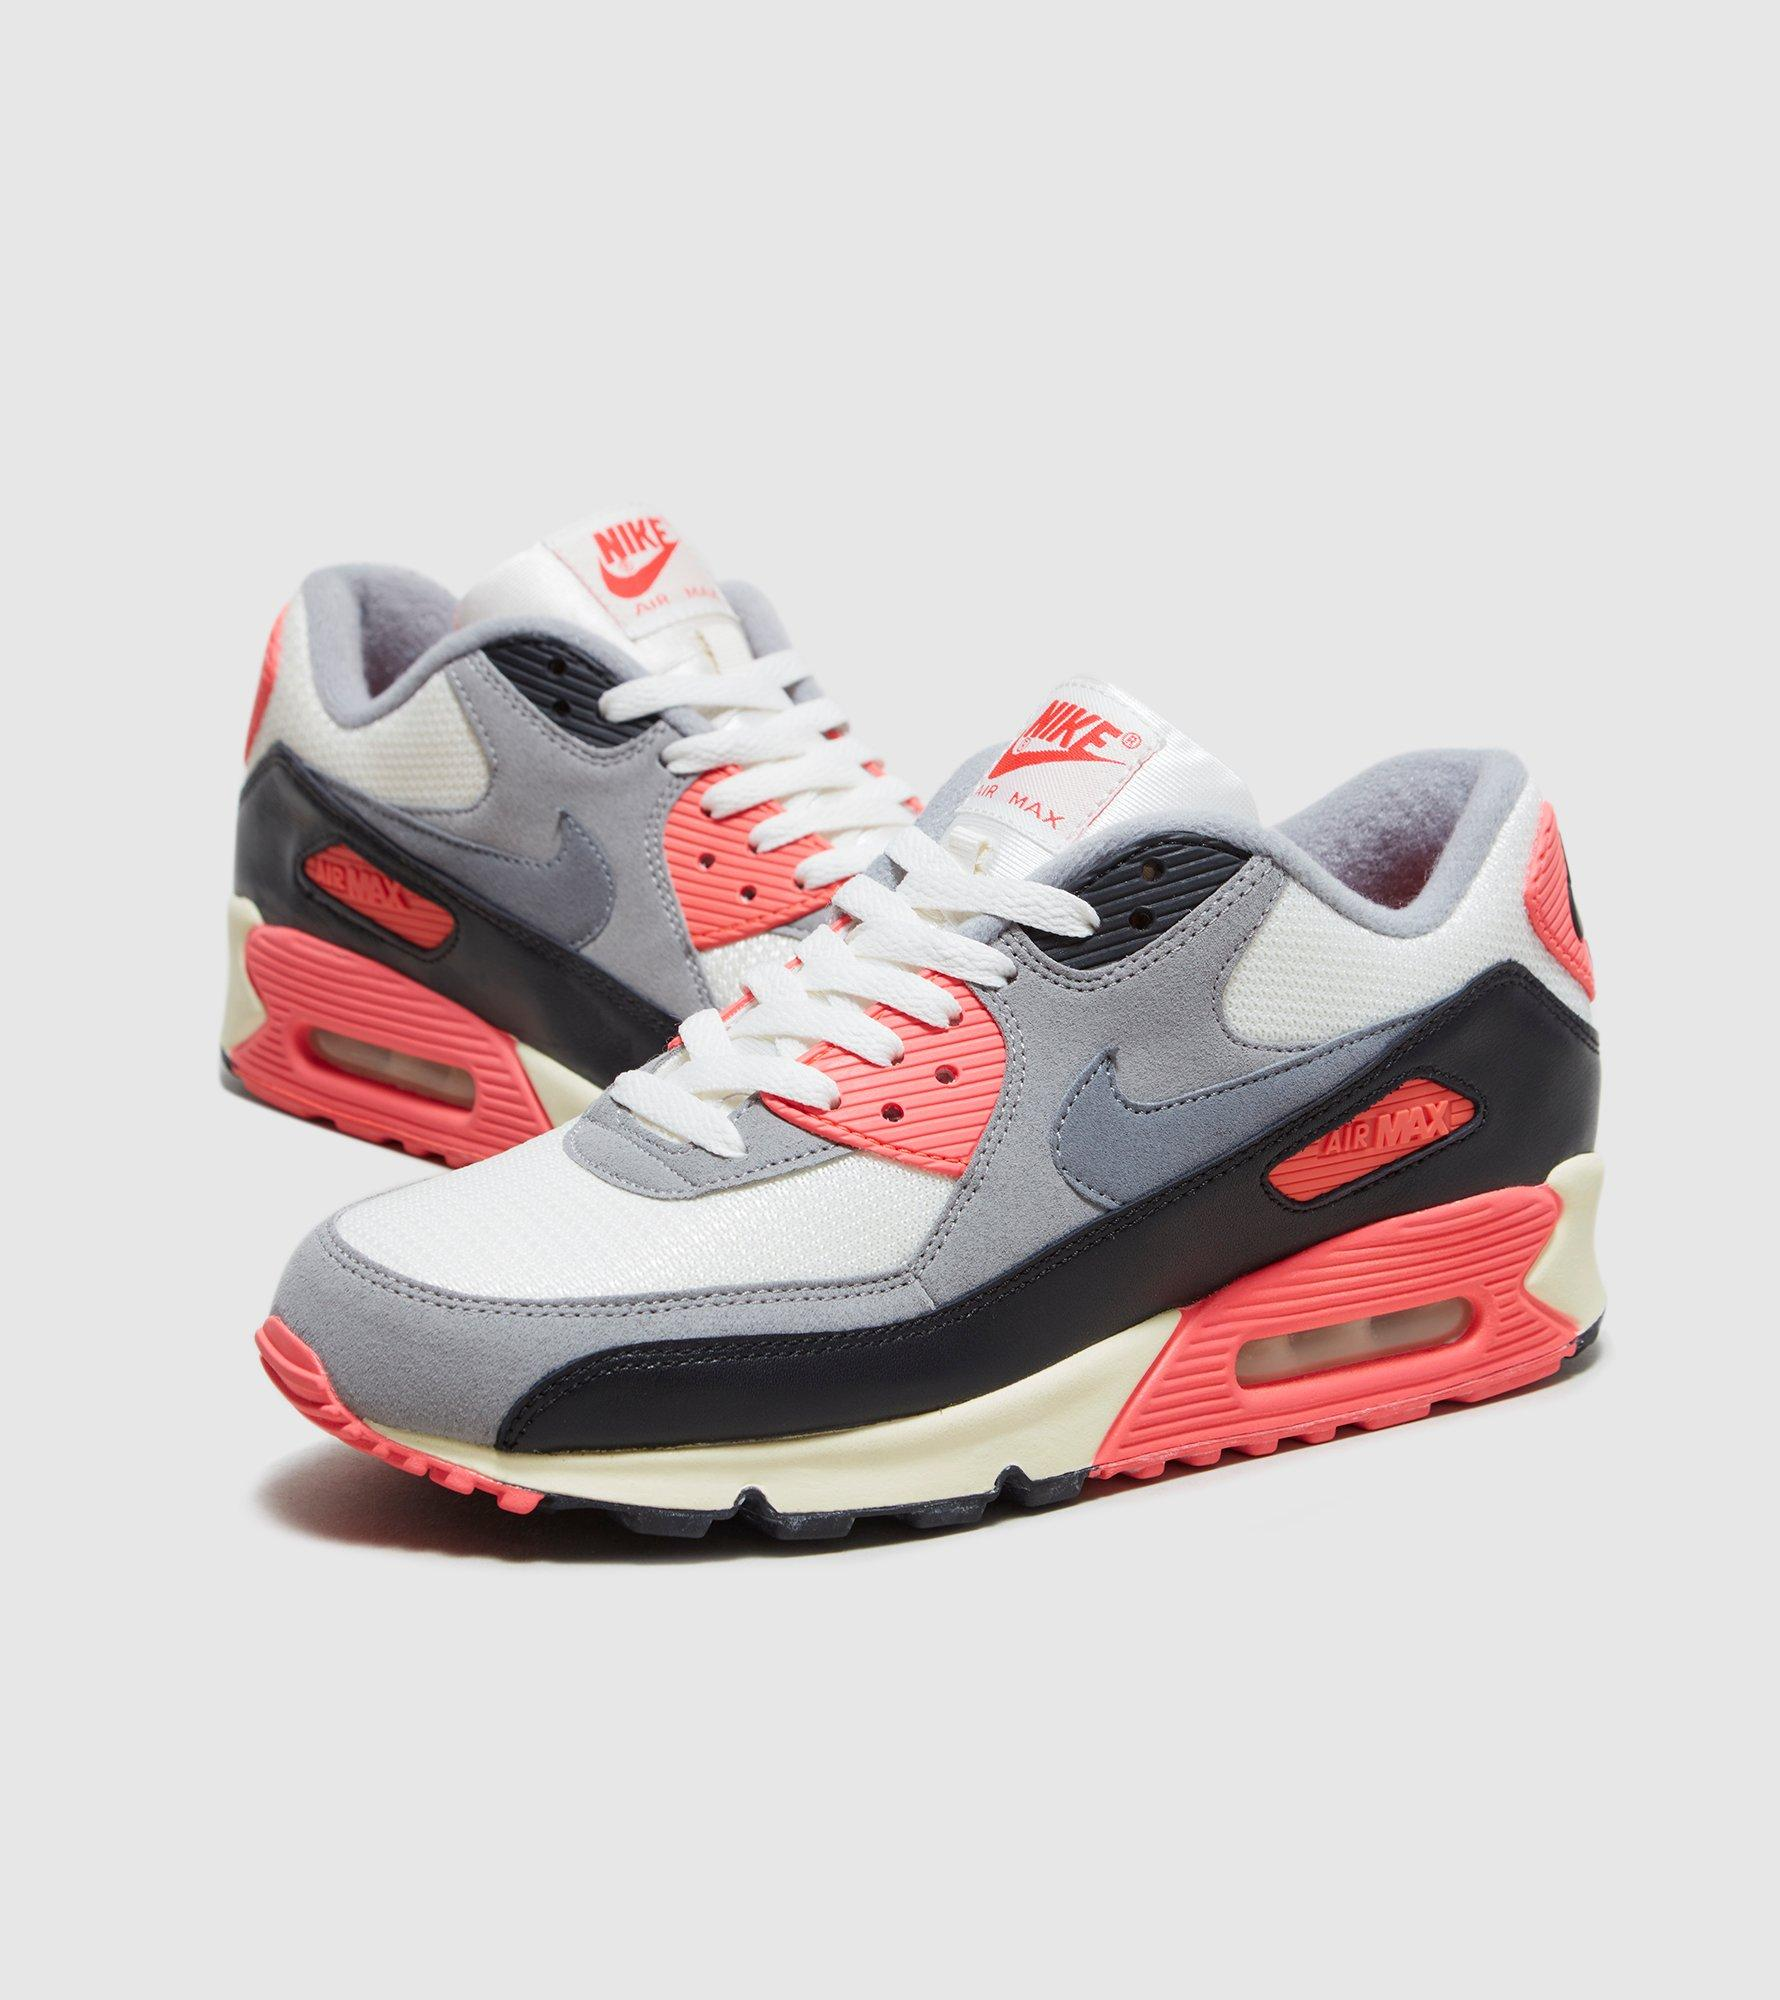 Air Max 90 Dorigine Infrarouge Og Vntg